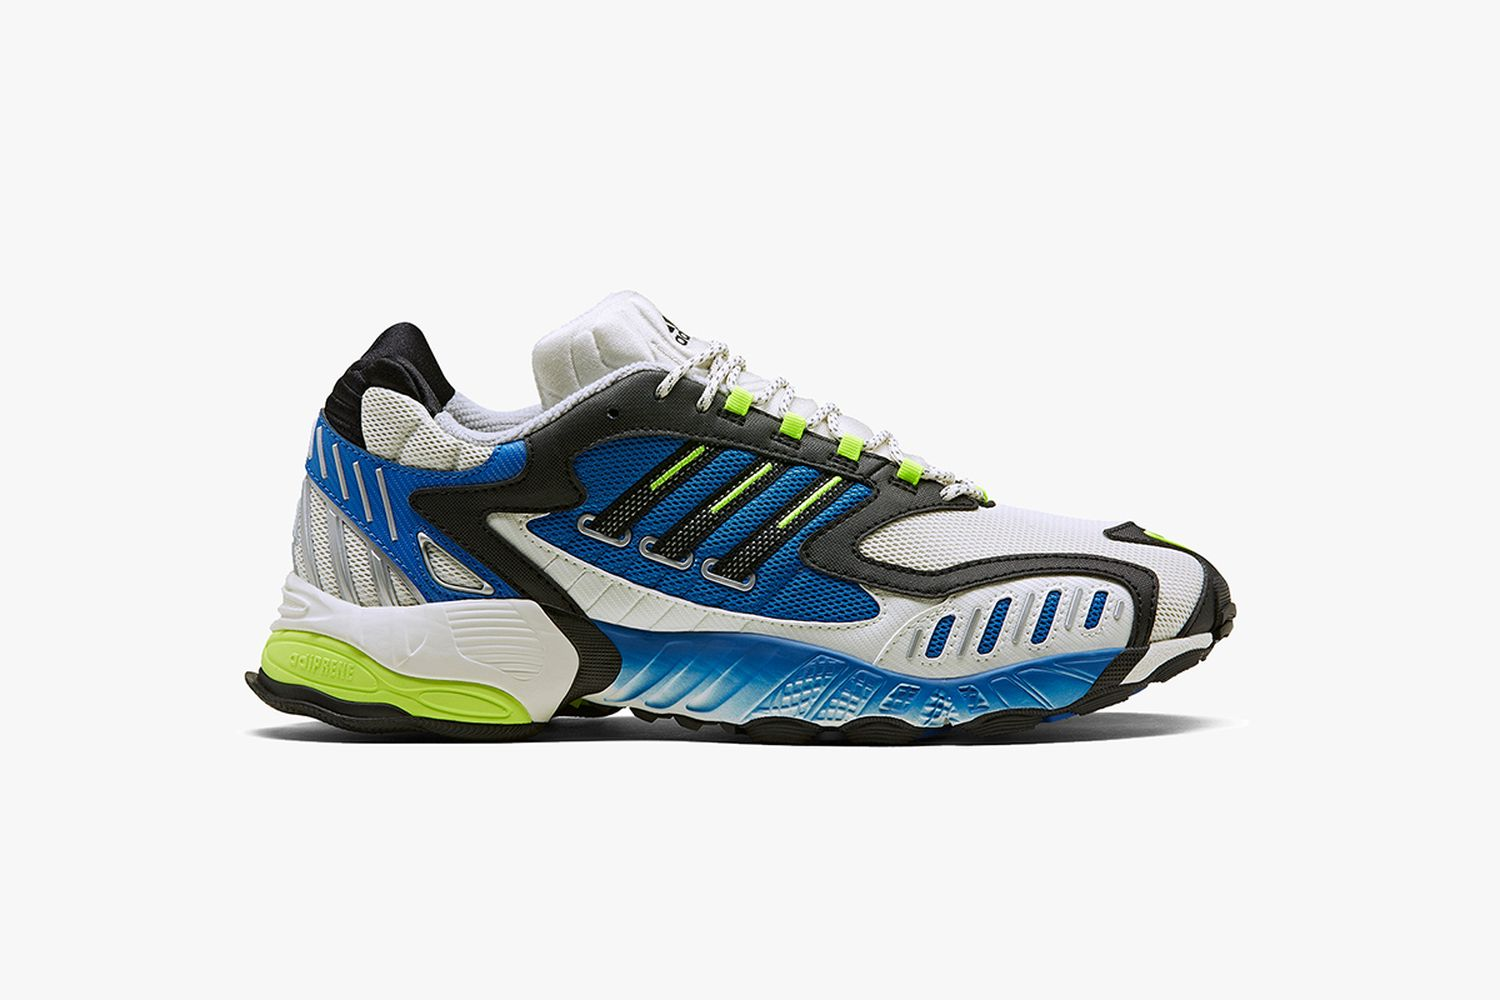 10 of the Best adidas Torsion Sneakers Out Now